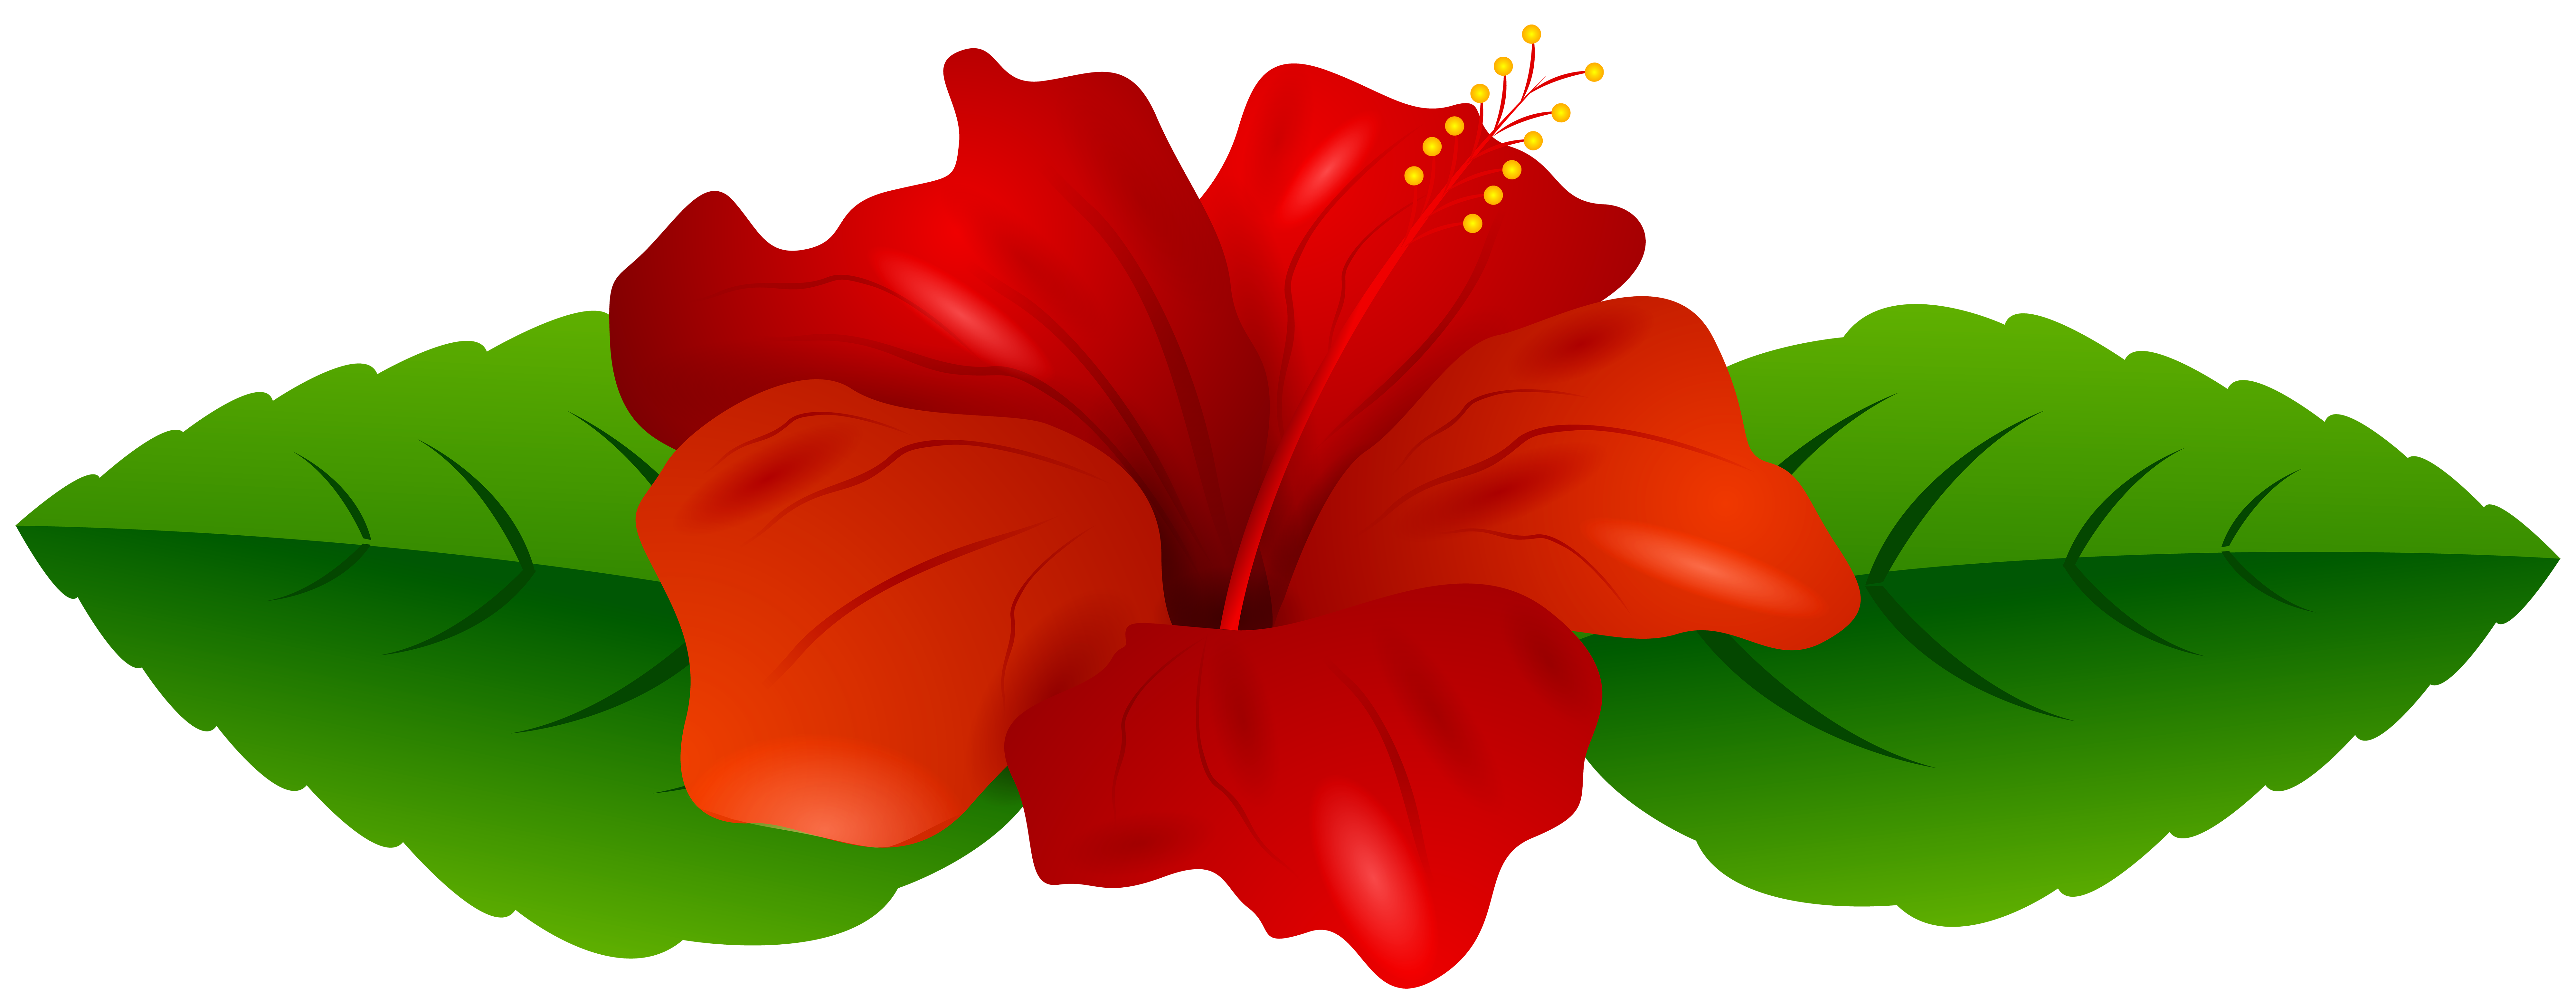 Free hibiscus flower clipart clip royalty free download Red Hibiscus Transparent PNG Clip Art Image | Gallery Yopriceville ... clip royalty free download